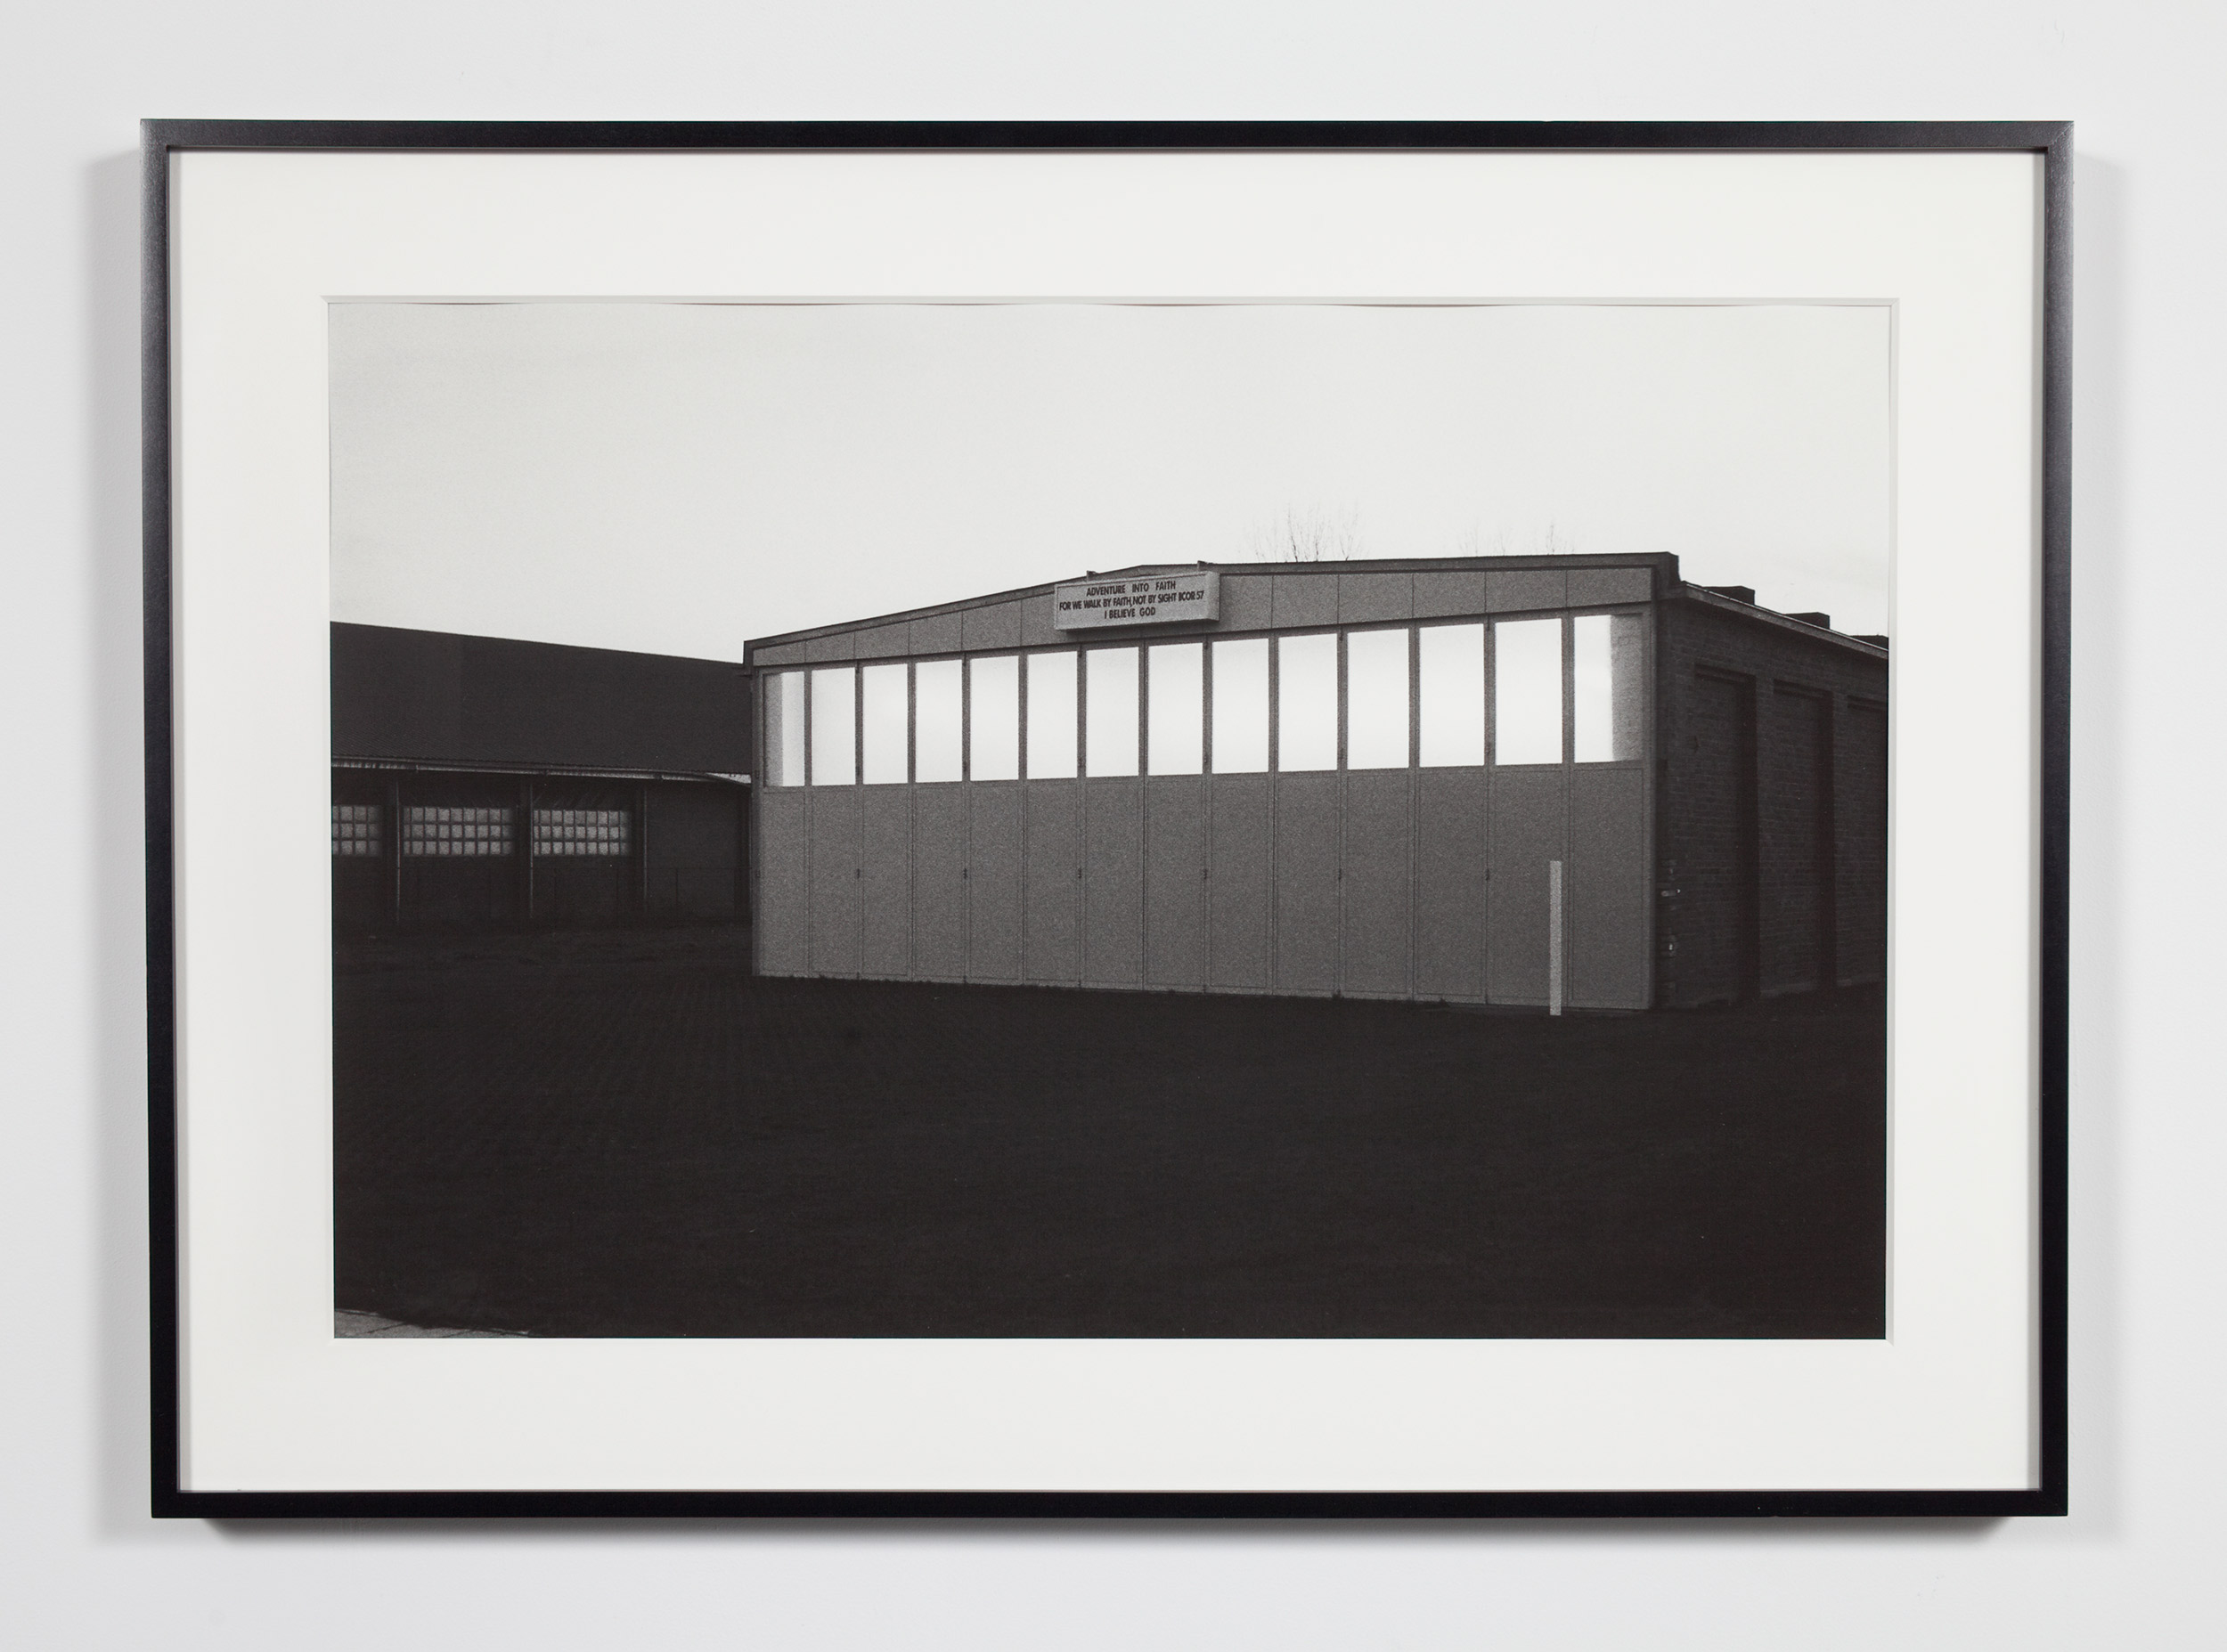 Private Collection Gallery (Vanmoerkerke), Ostende, Belgium, November 9, 2008    2009   Epson Ultrachrome K3 archival ink jet print on Hahnemühle Photo Rag paper  36 3/8 x 26 3/8 inches   Industrial Portraits, 2008–